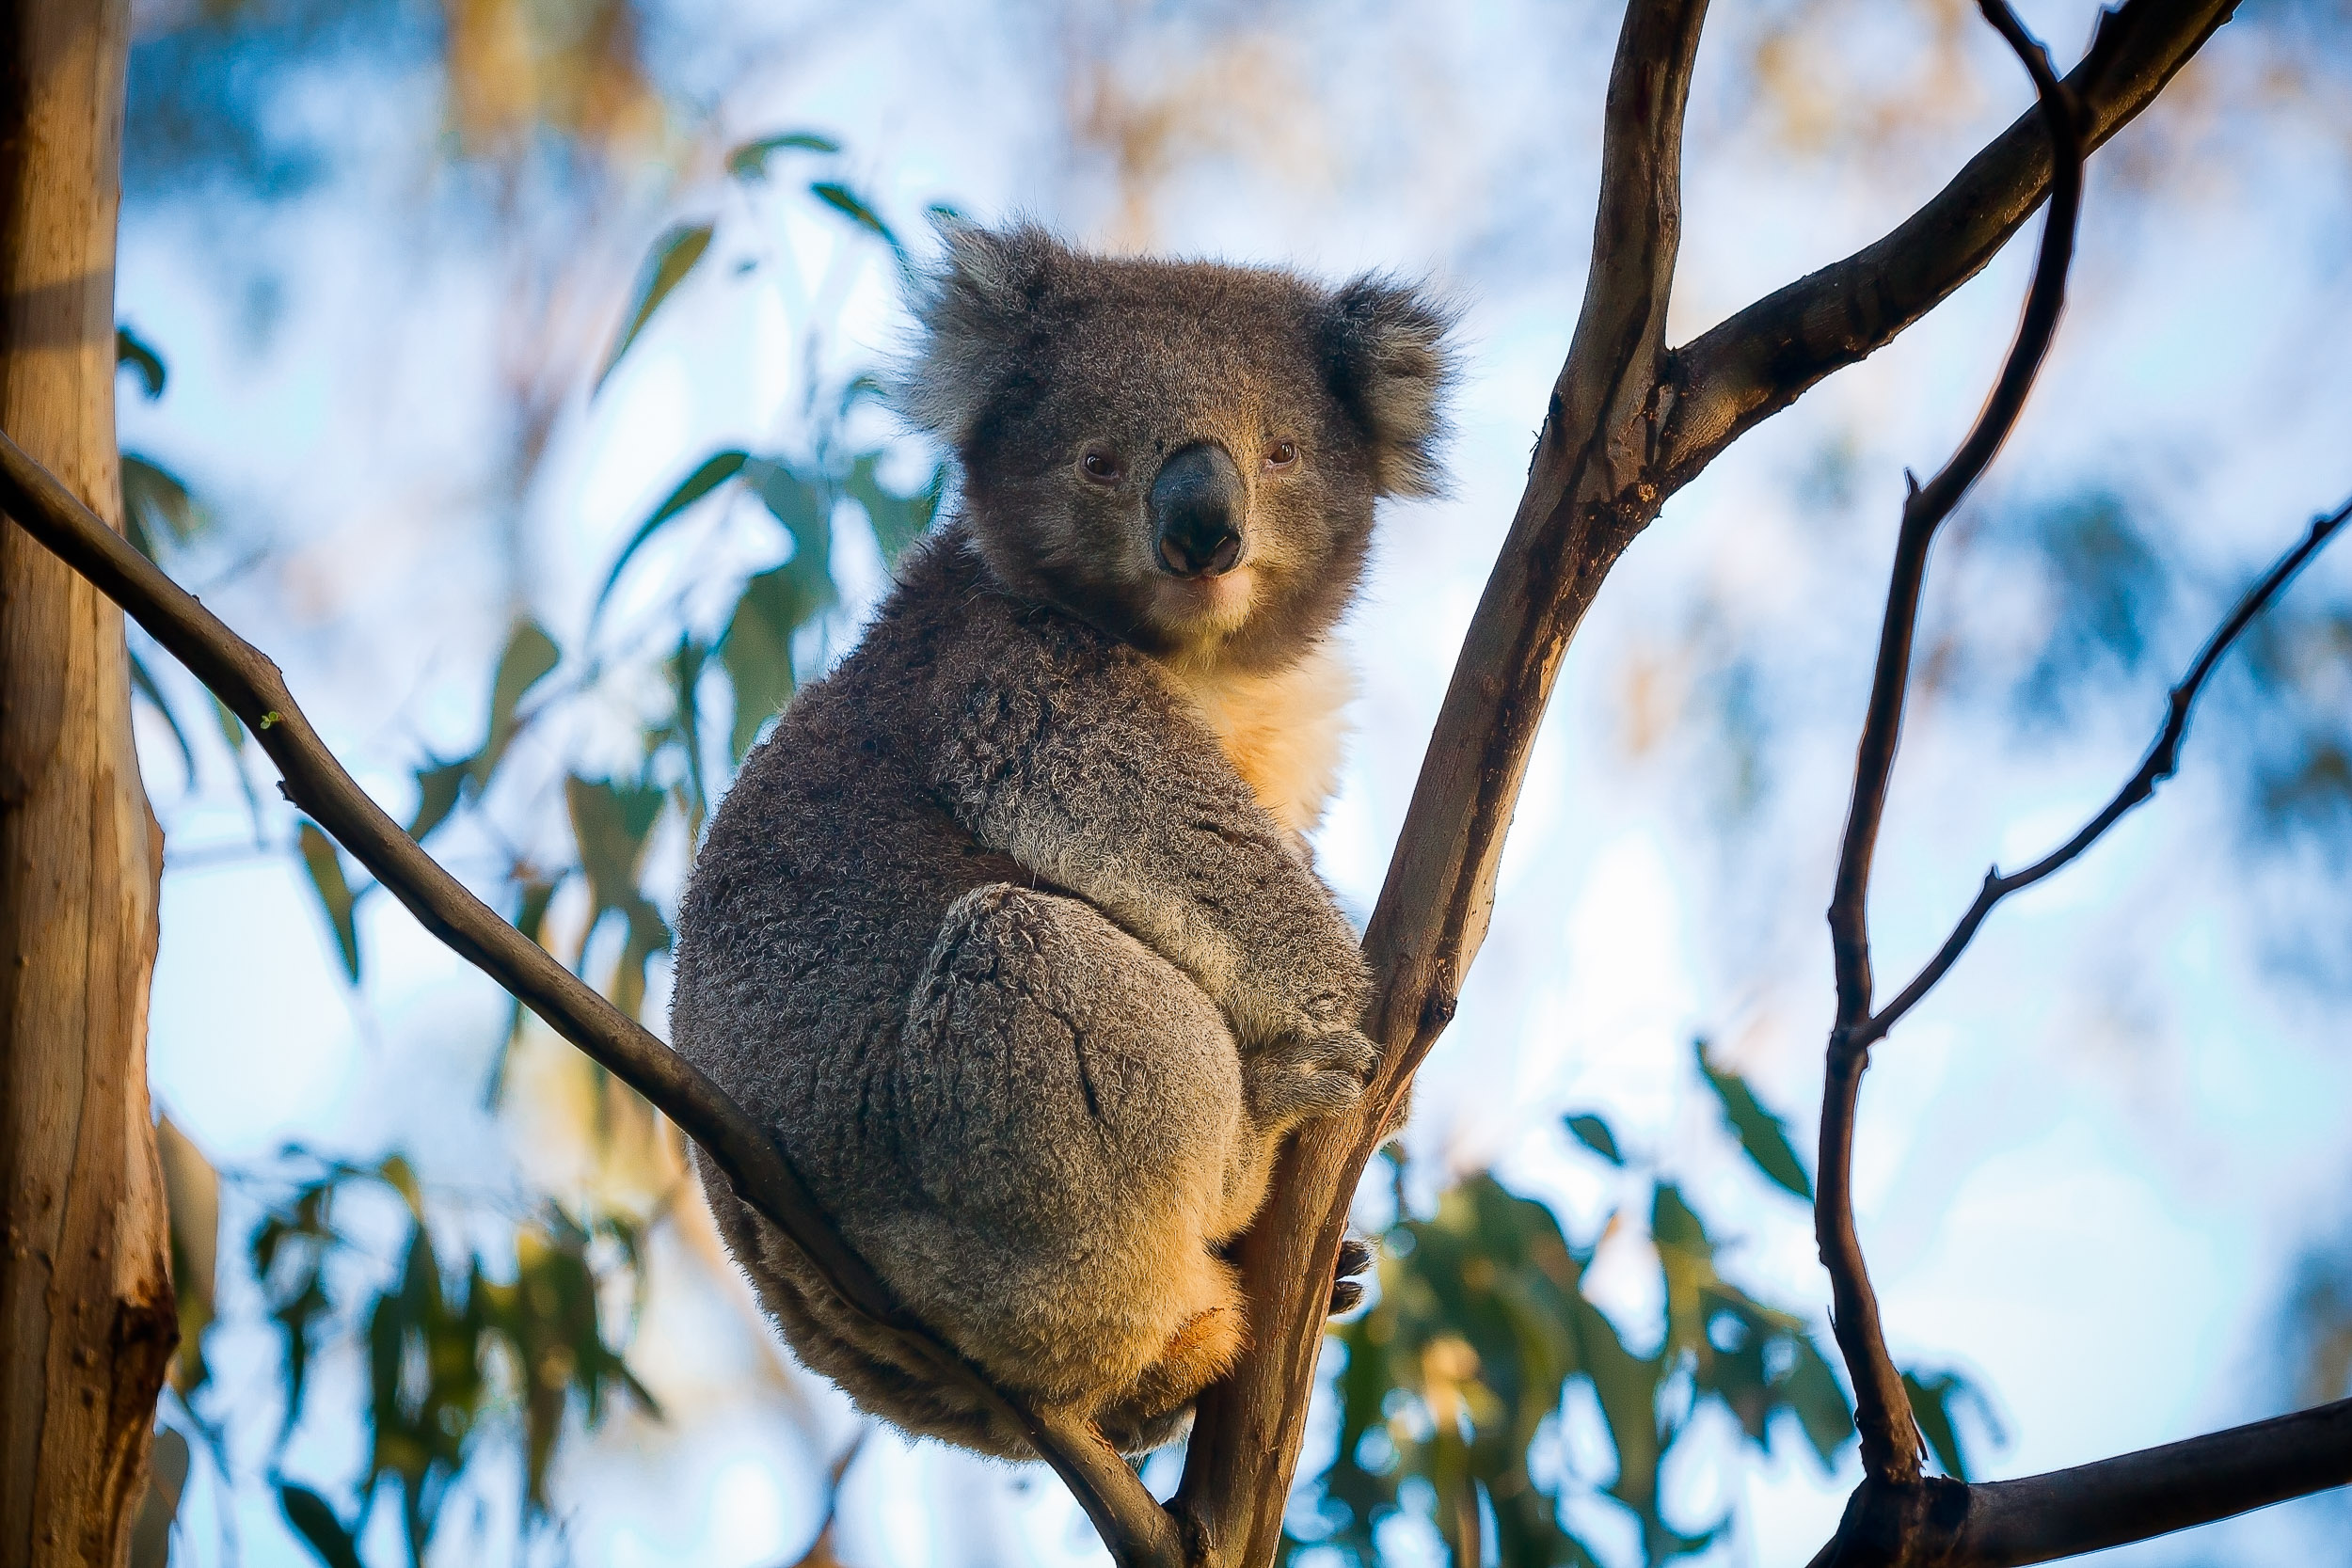 A portrait of  a well feed and content Koala  sitting in a tree near  Cape Otway  in  Victoria, Australia .